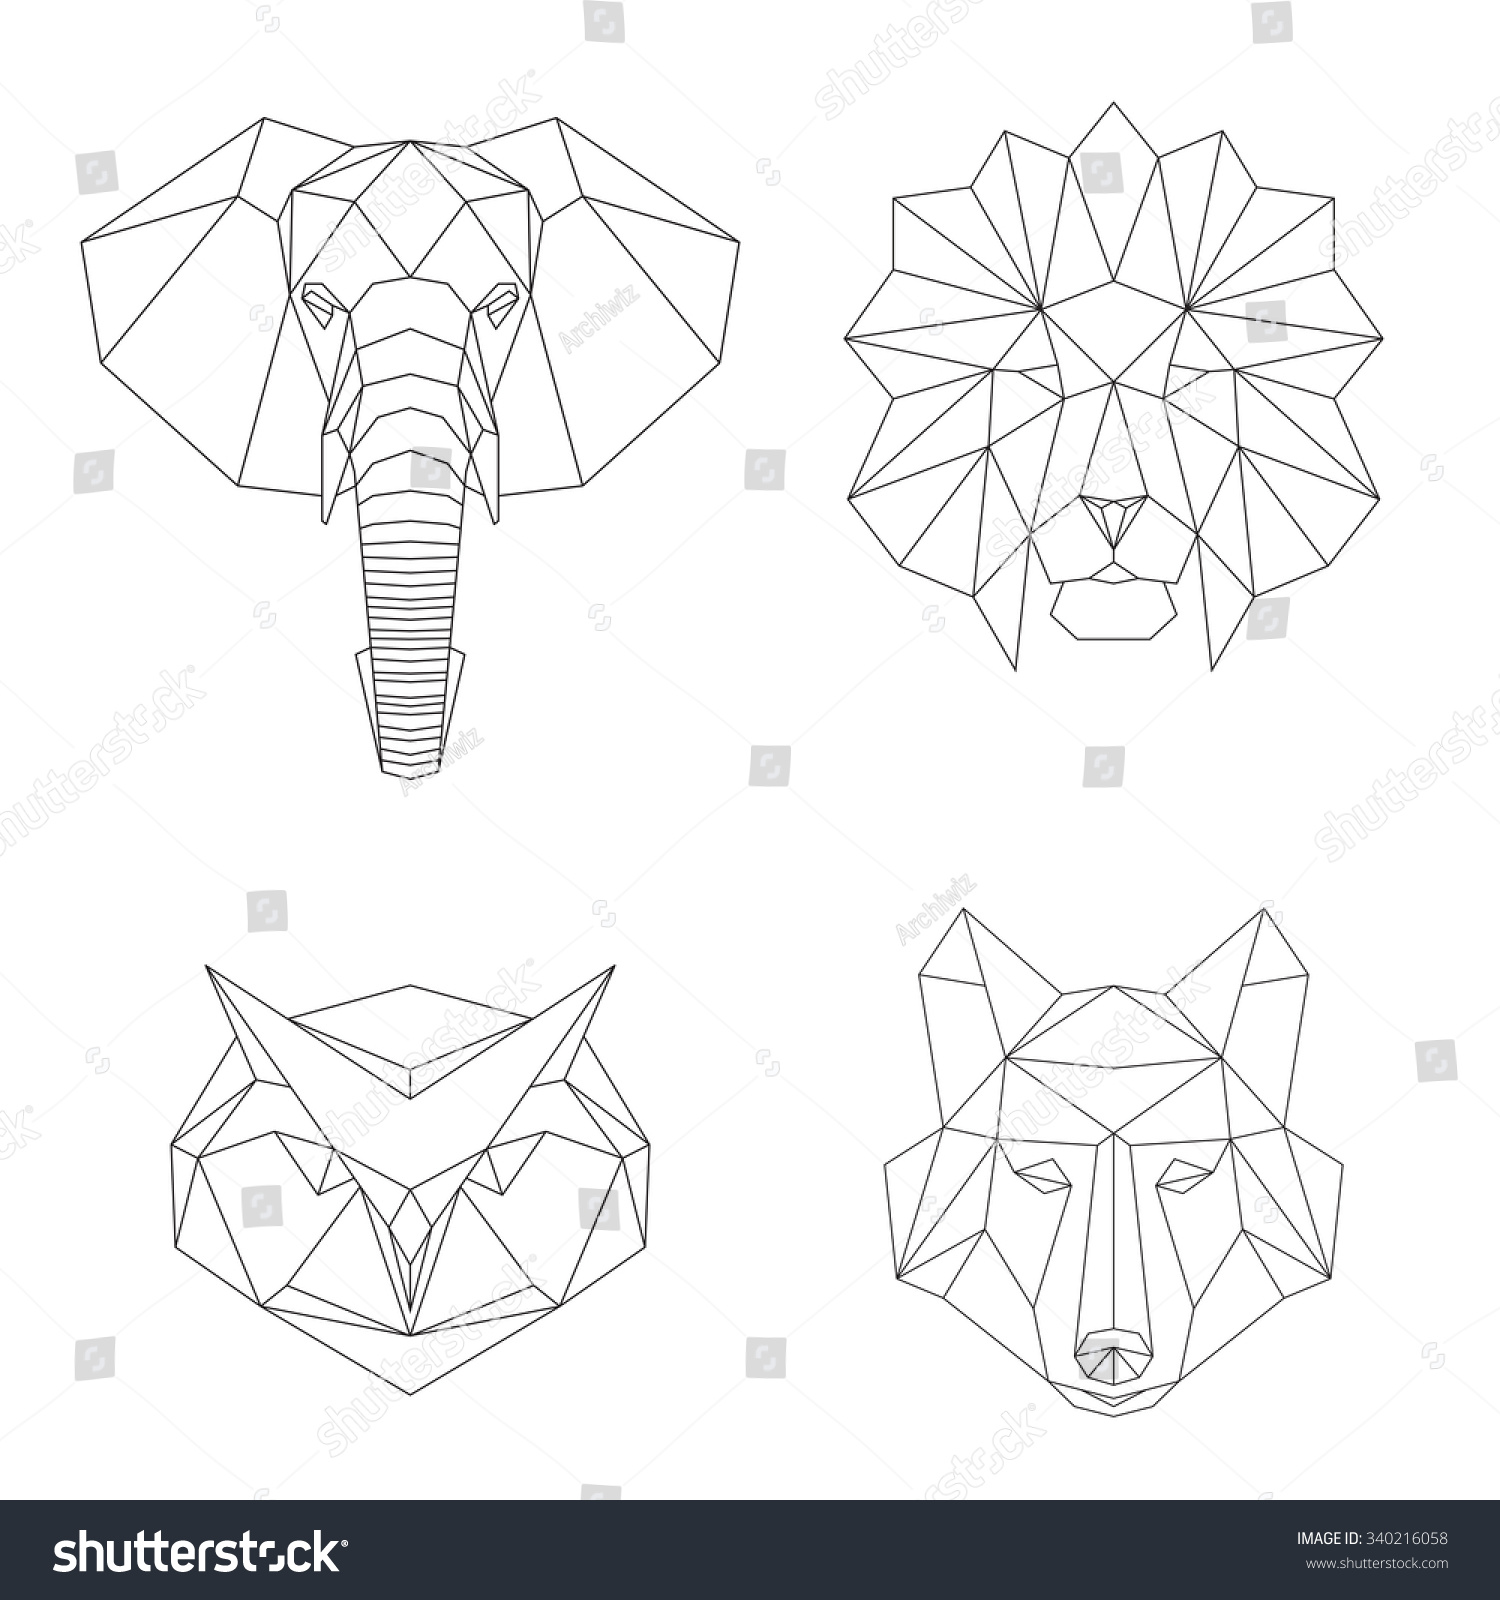 Vector Geometric Low Poly Illustrations Set Stock Vector ...